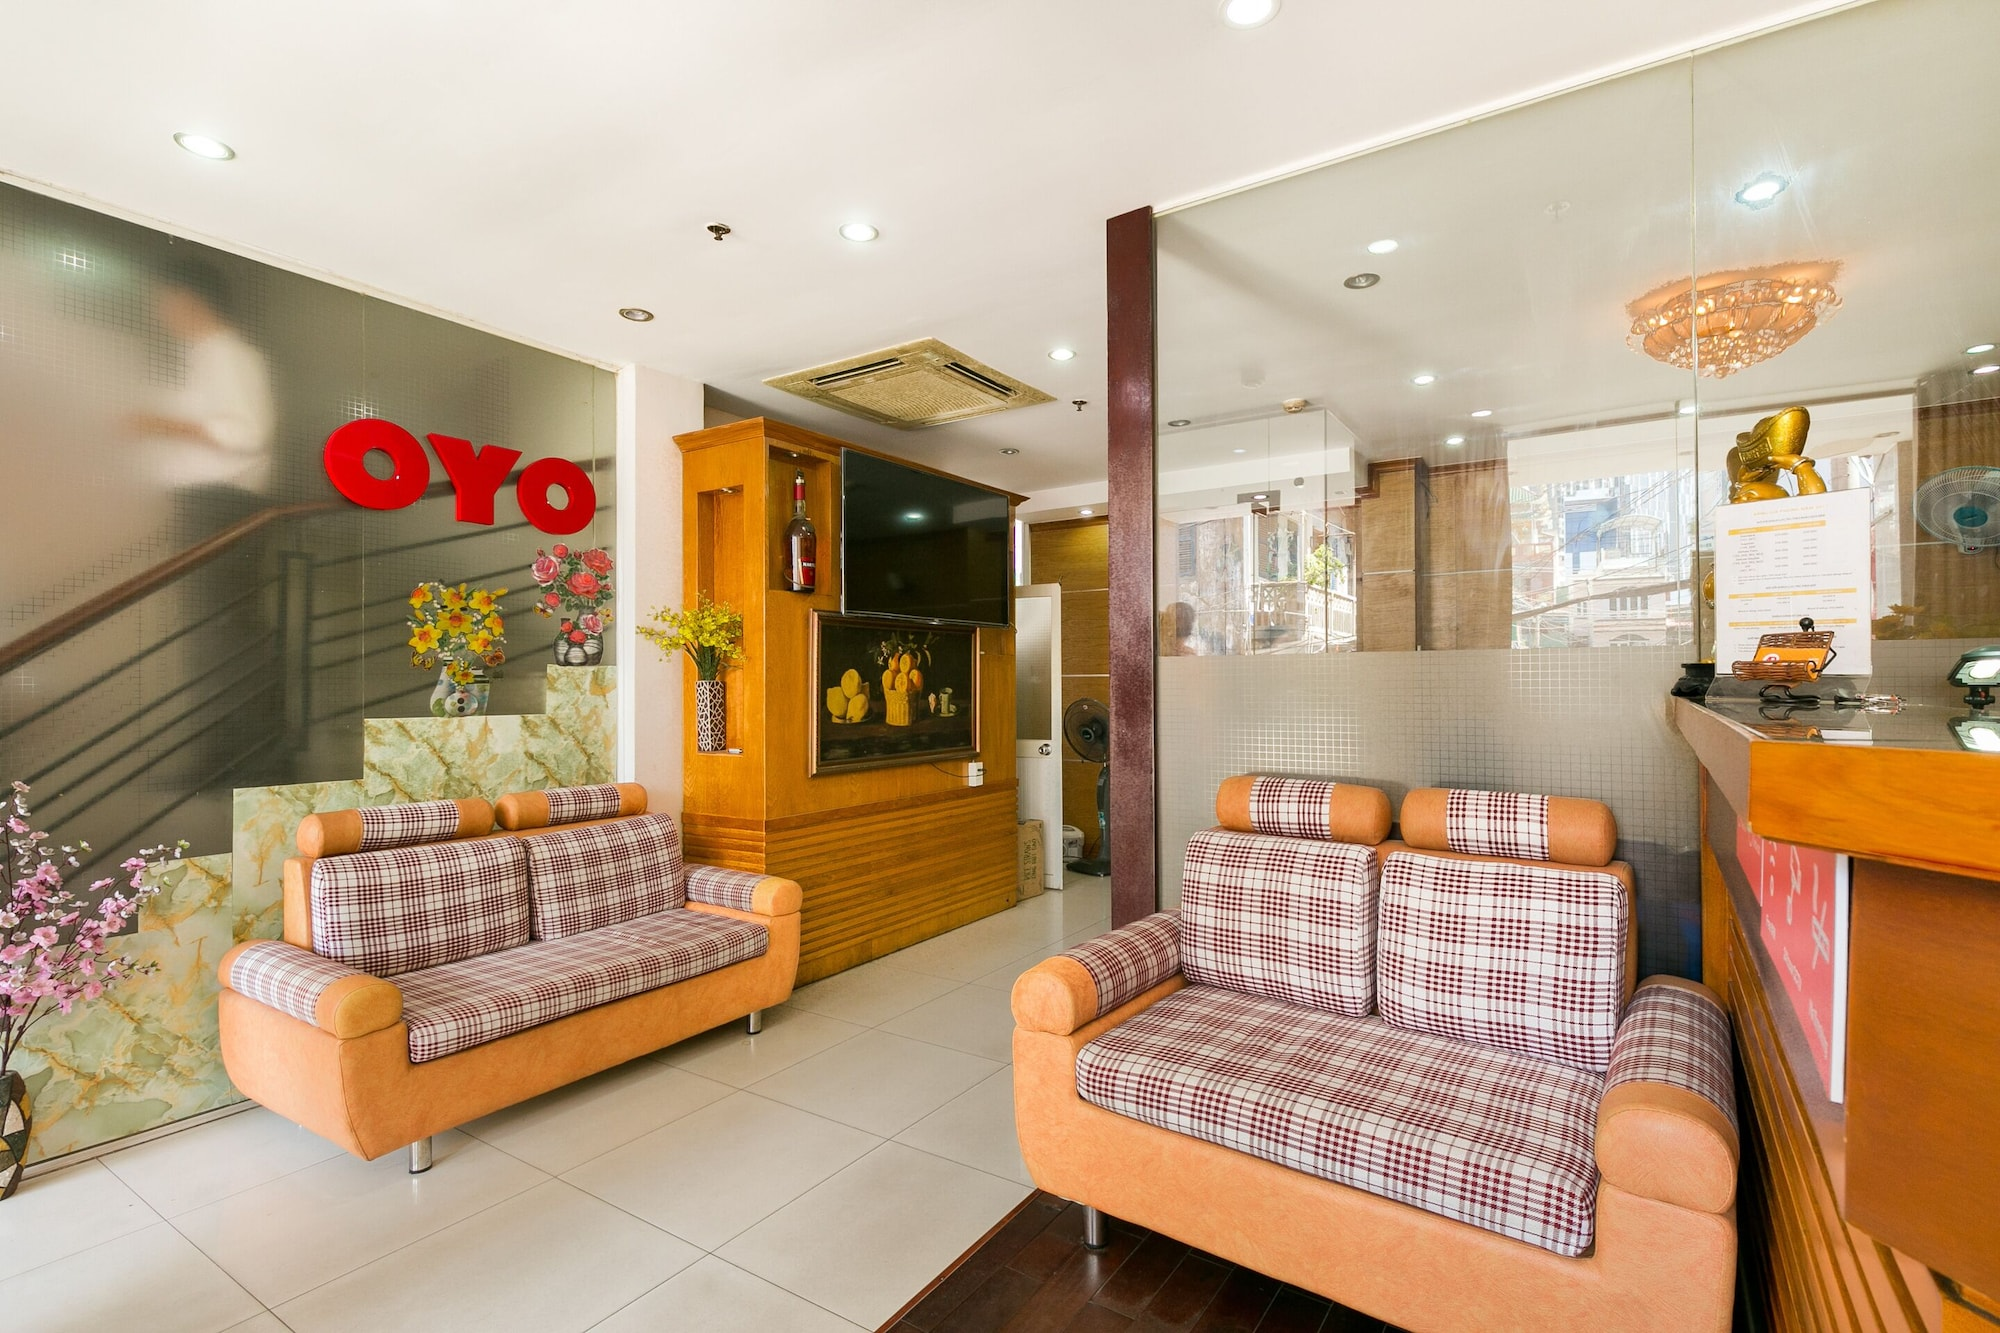 OYO 314 Anh Duong Hotel, Quận 4